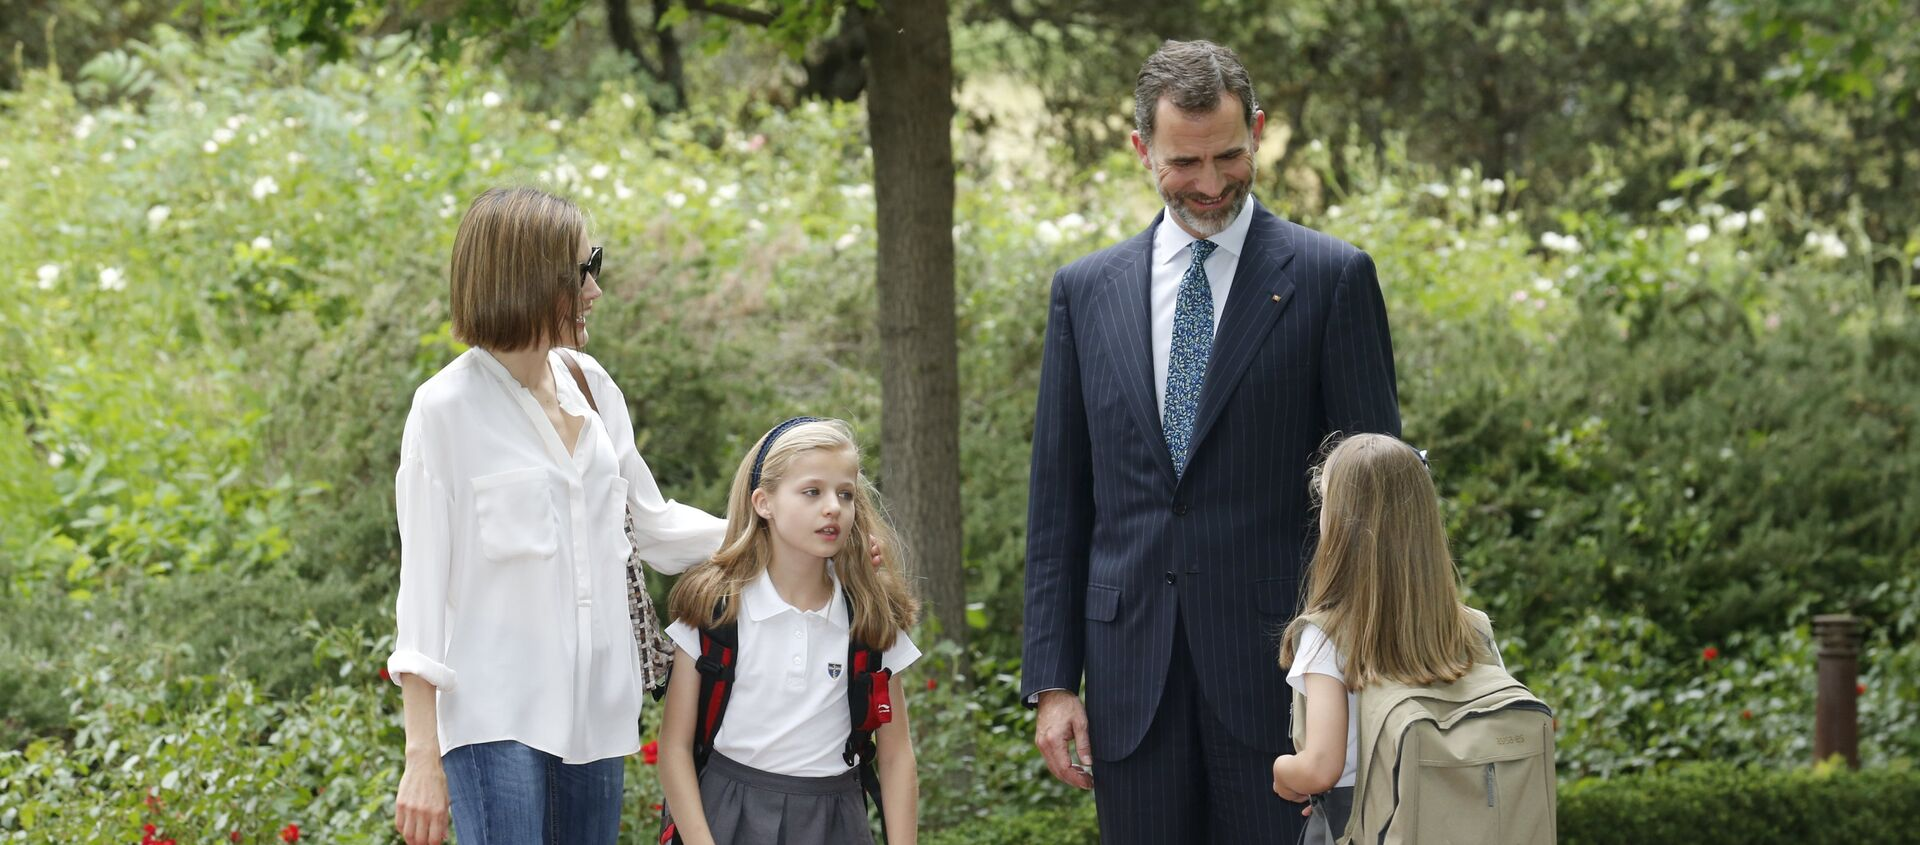 Spain's King Felipe (2nd R), Queen Letizia (L) and their daughters Infanta Leonor and Sofia (R) walk at Zarzuela Palace in Madrid, Spain, in this May 14, 2015 - Sputnik Mundo, 1920, 29.01.2021